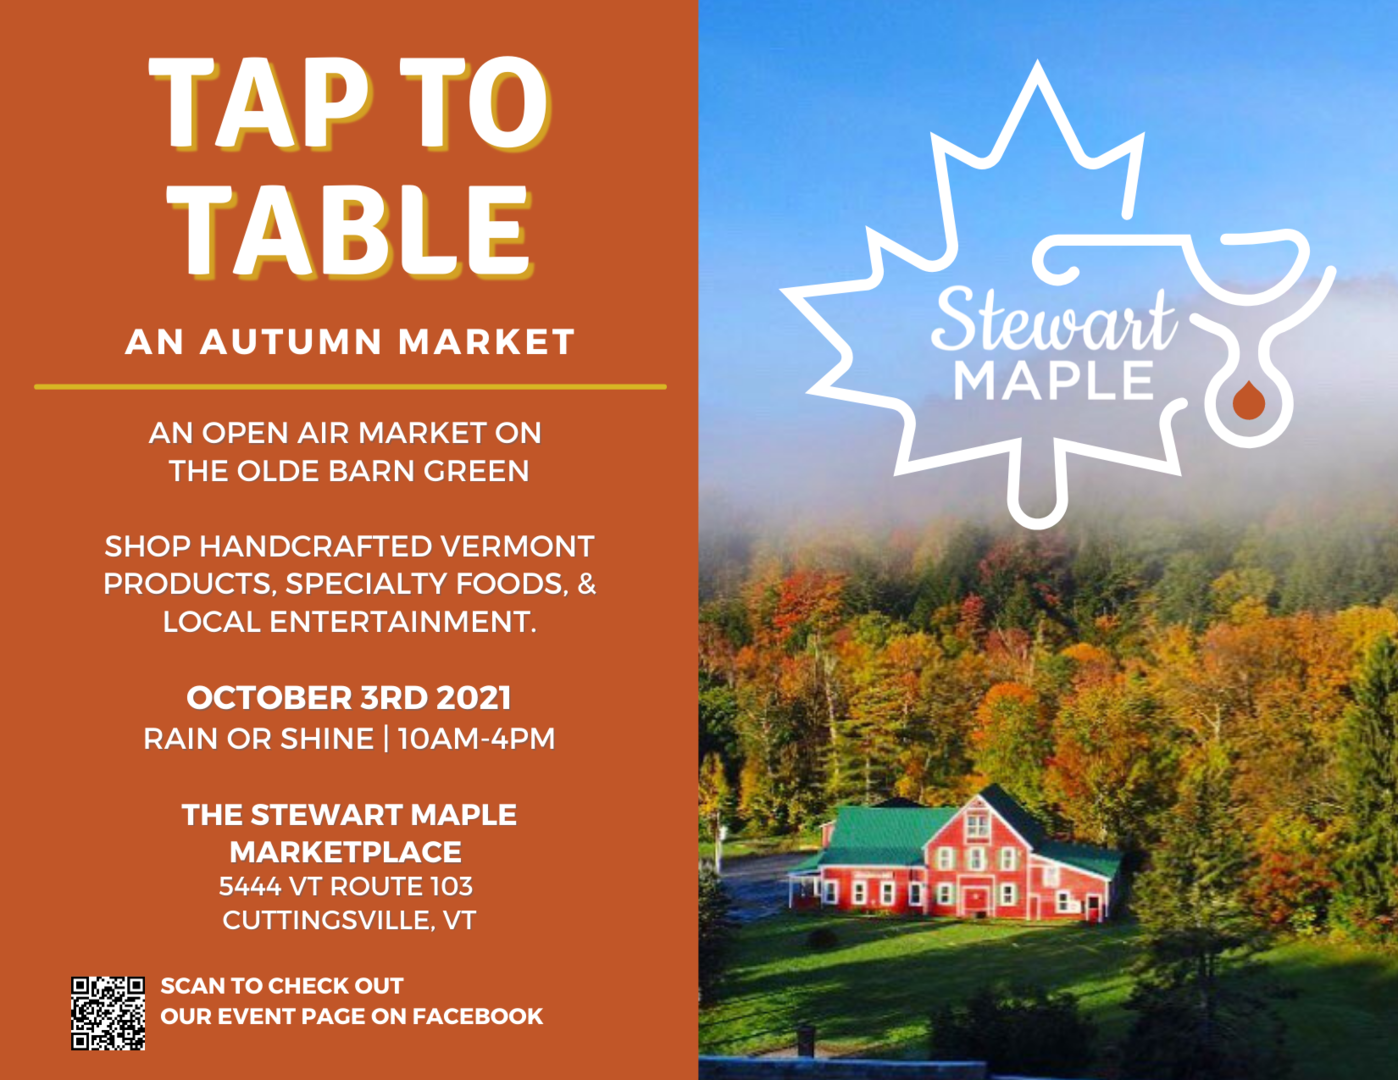 Tap to Table - An Autumn Market